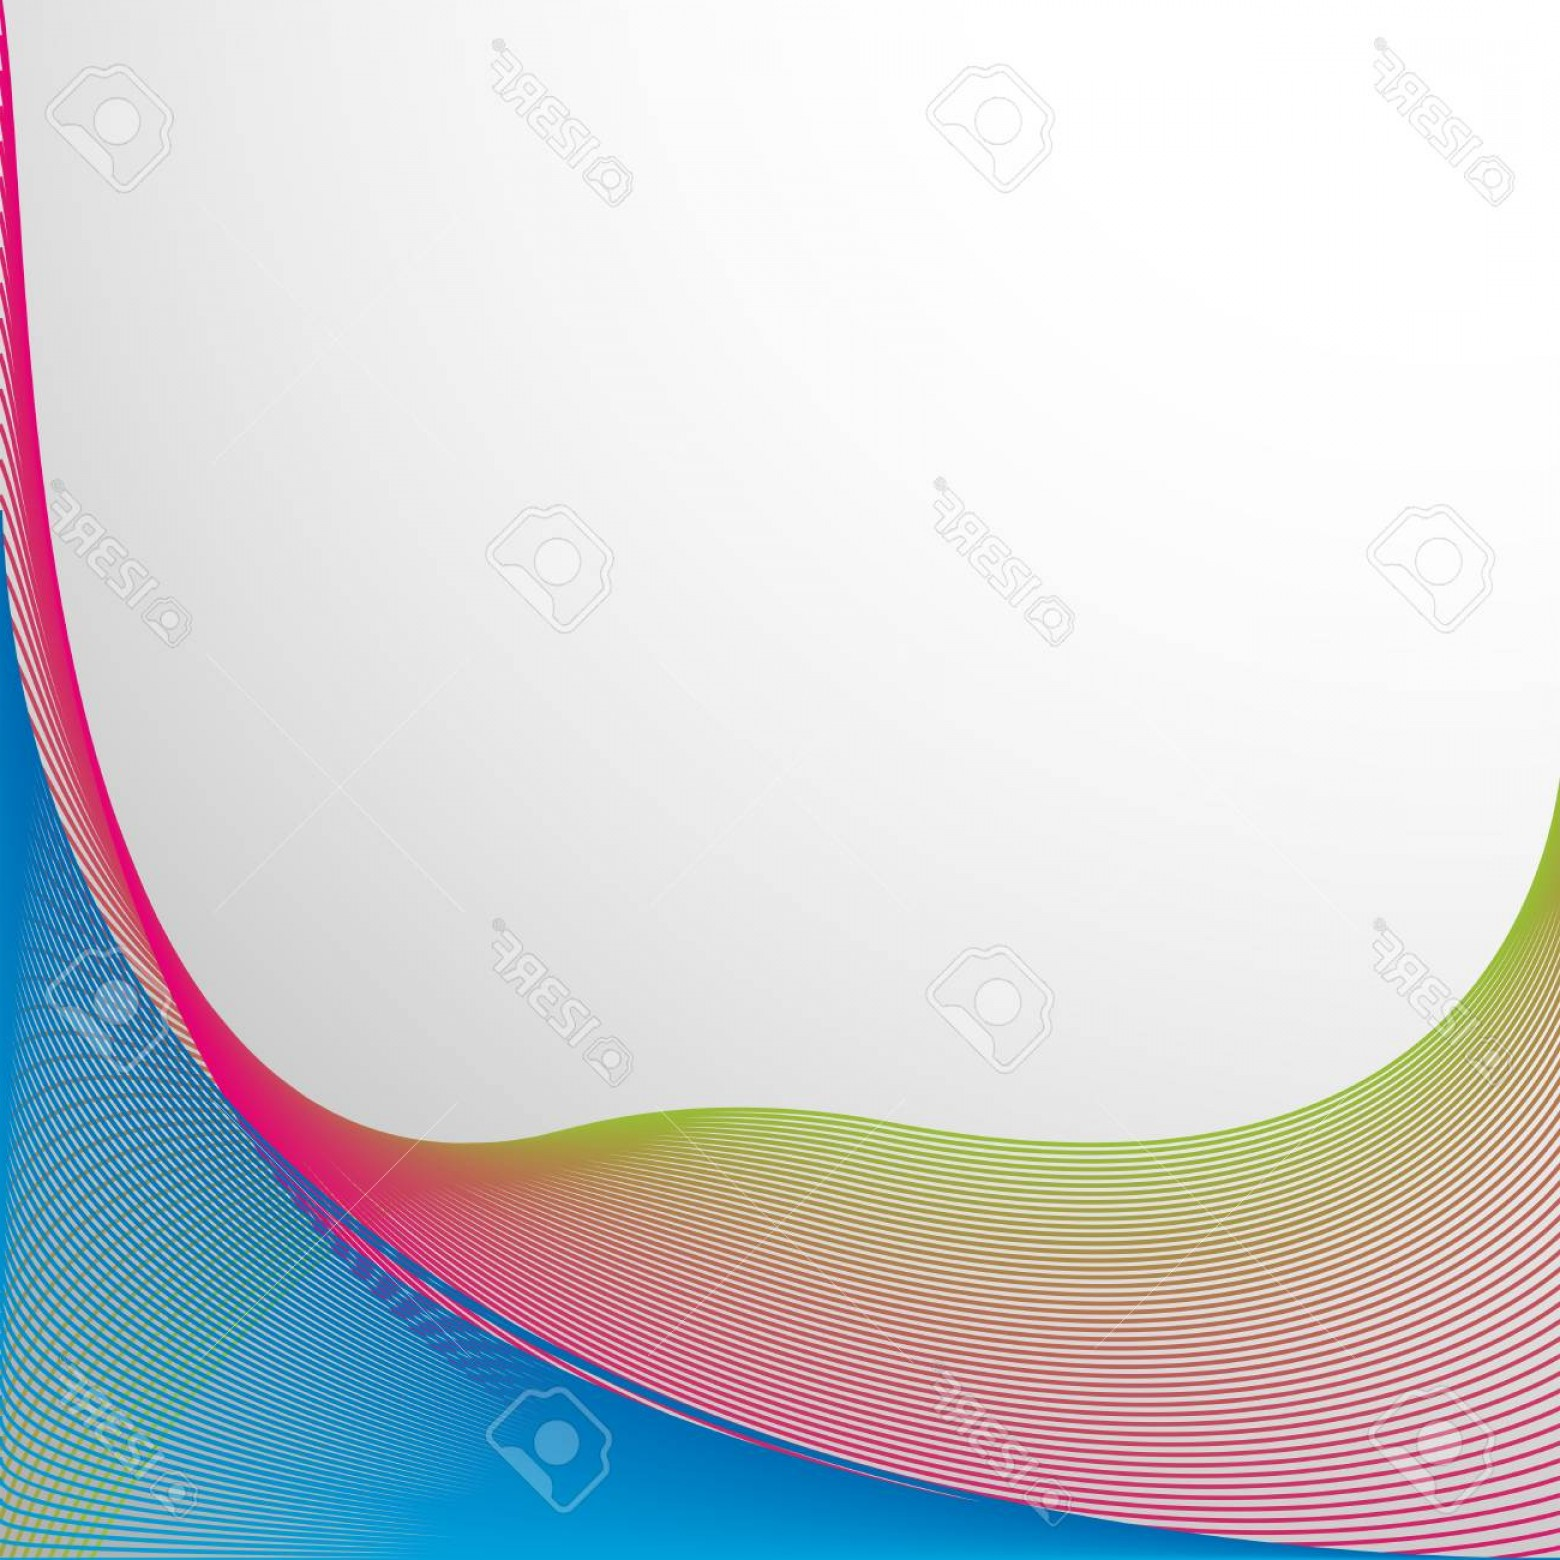 Wavy Line Illustrator Vector: Photostock Vector Background Design With Colorful Wavy Lines Illustration